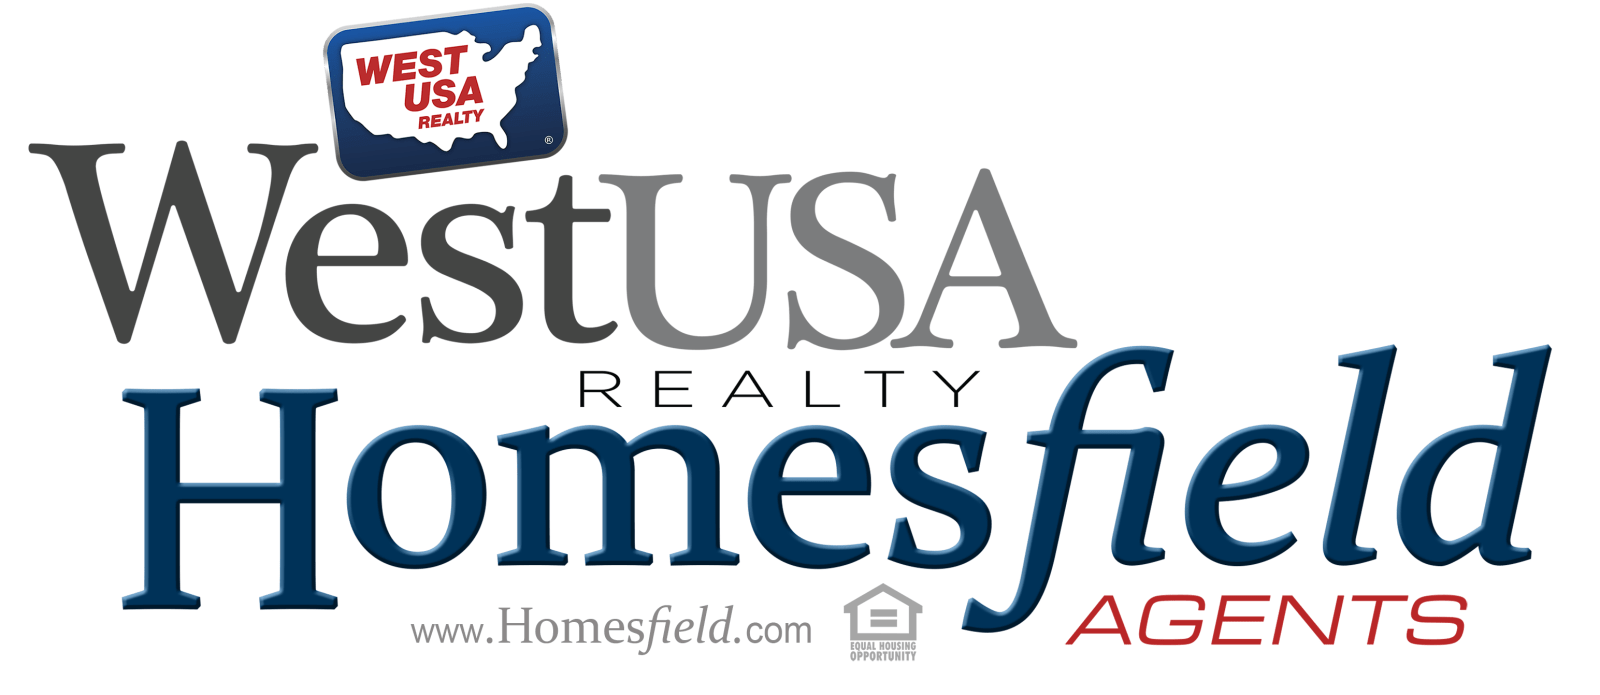 West USA Realty's Homesfield Agents in Phoenix Arizona